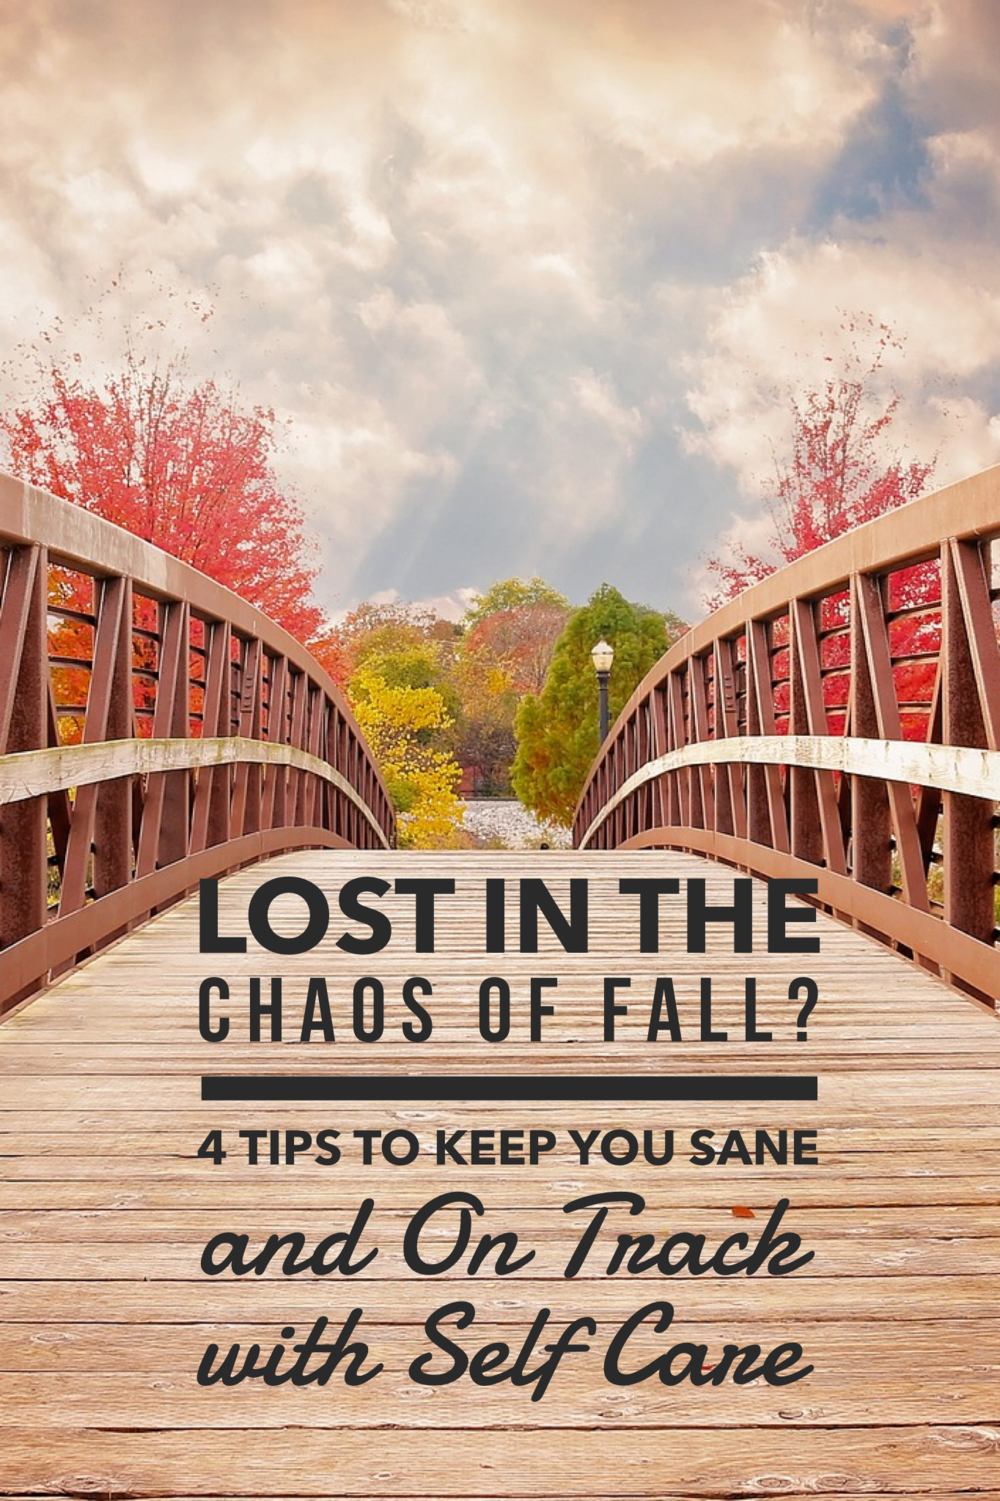 Lost In The Chaos Of Fall 4 Tips To Keep You Sane And On Track With Self Care.PNG